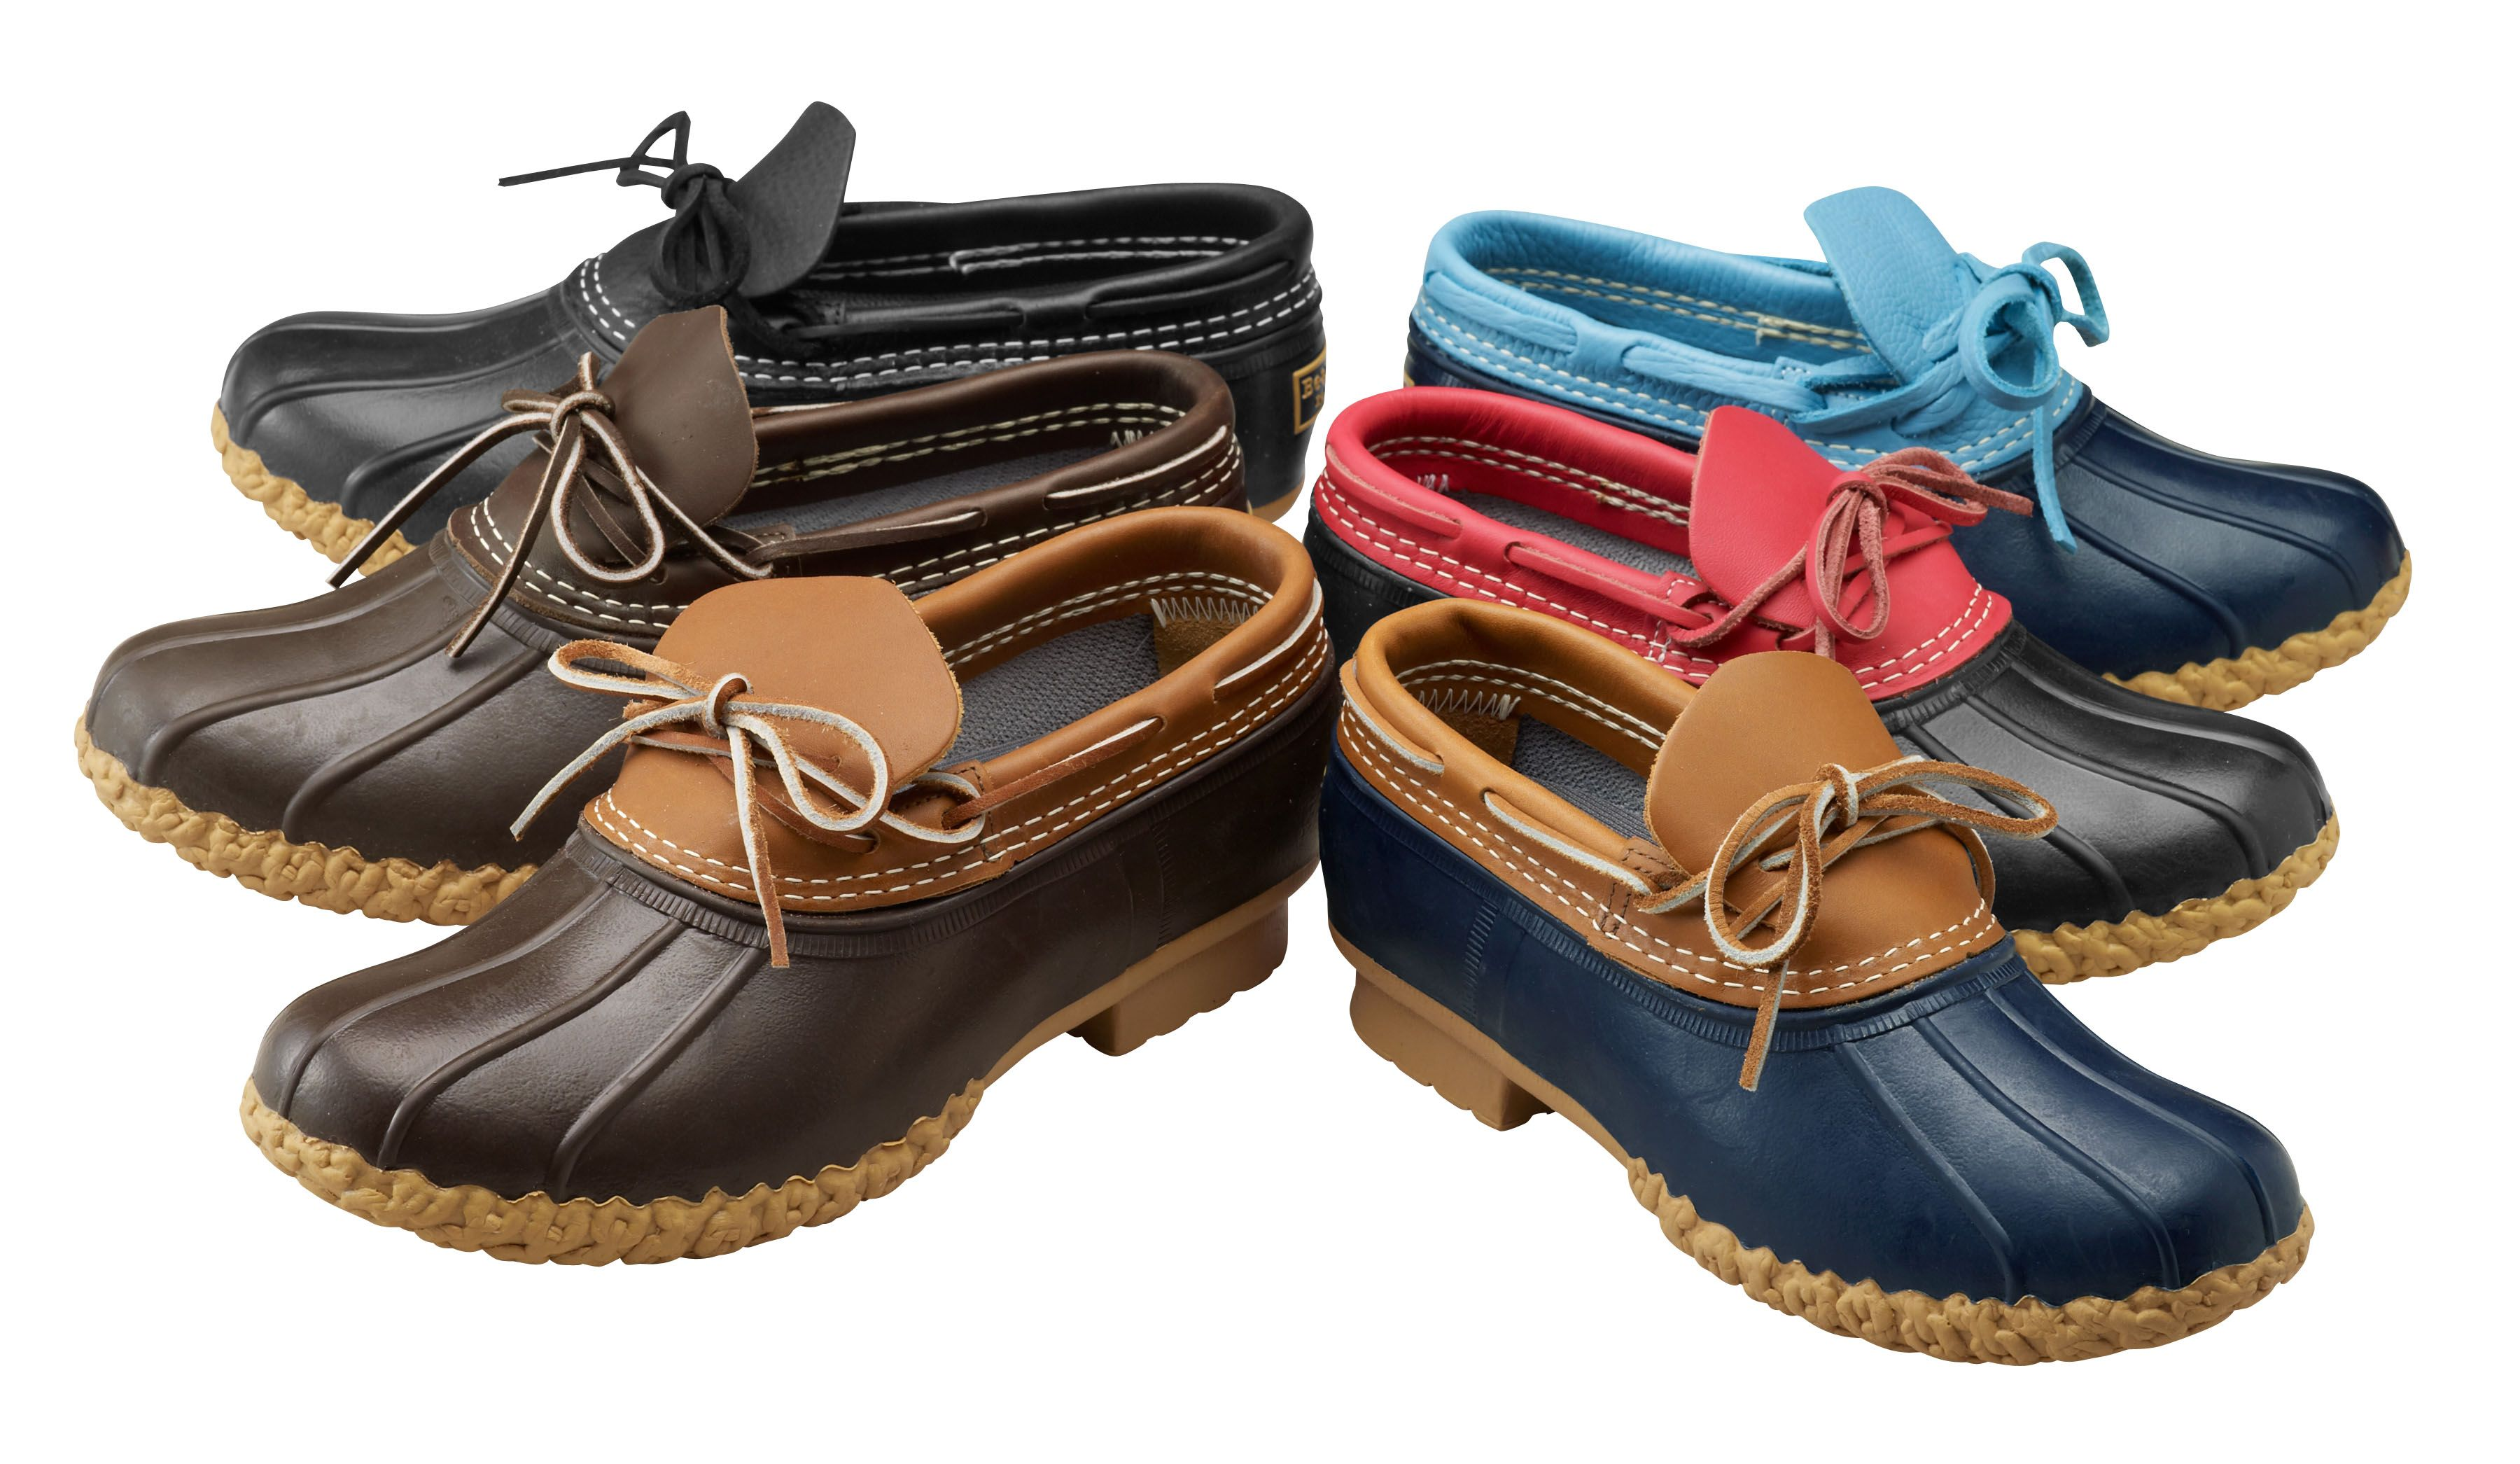 L.L.Bean Bean Boot Rubber Mocs - a spring neccessity made in Maine - USA